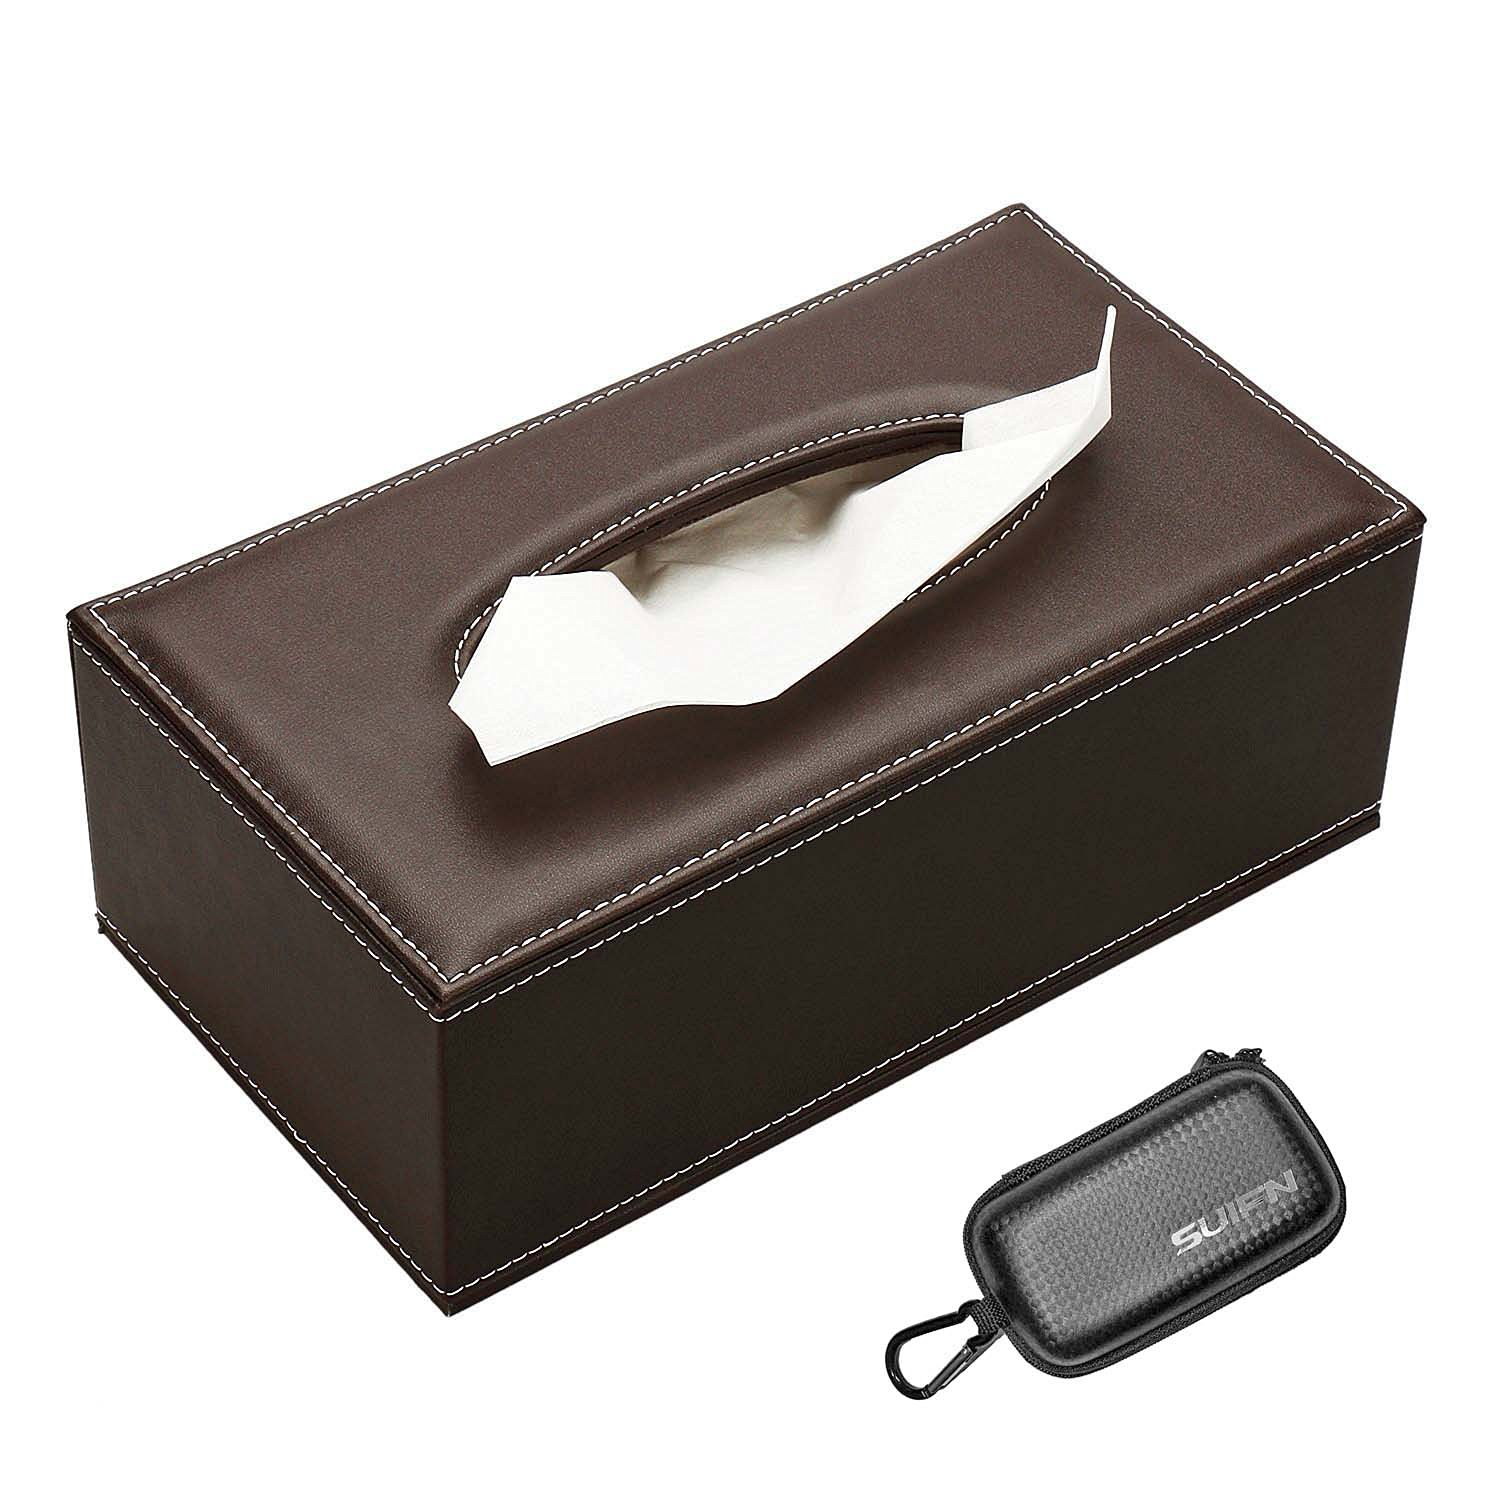 JHGJ PU Leather Rectangular Tissue Box Holder with Cover Case Tray Pumping for Home Office Car Automotive and SUIFN CASE (Brown)